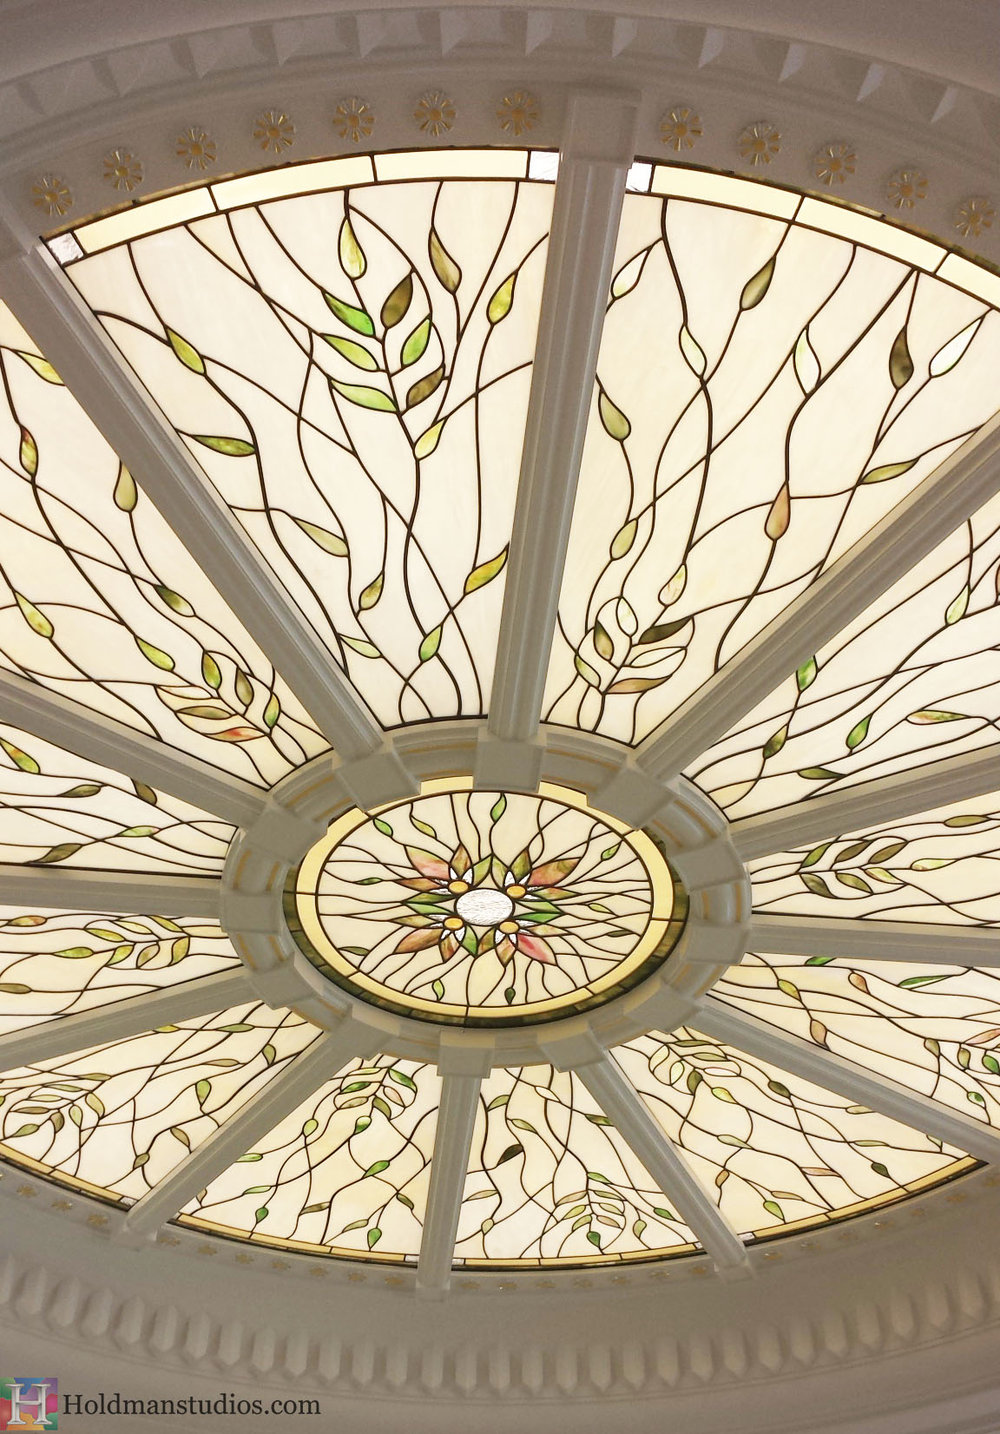 Holdman_Studios_Stained_Art_Glass_Payson_Utah_Temple_Apple_Blossom_Leaves_Skylight_Rose_Window_Closeup_Crop.jpg